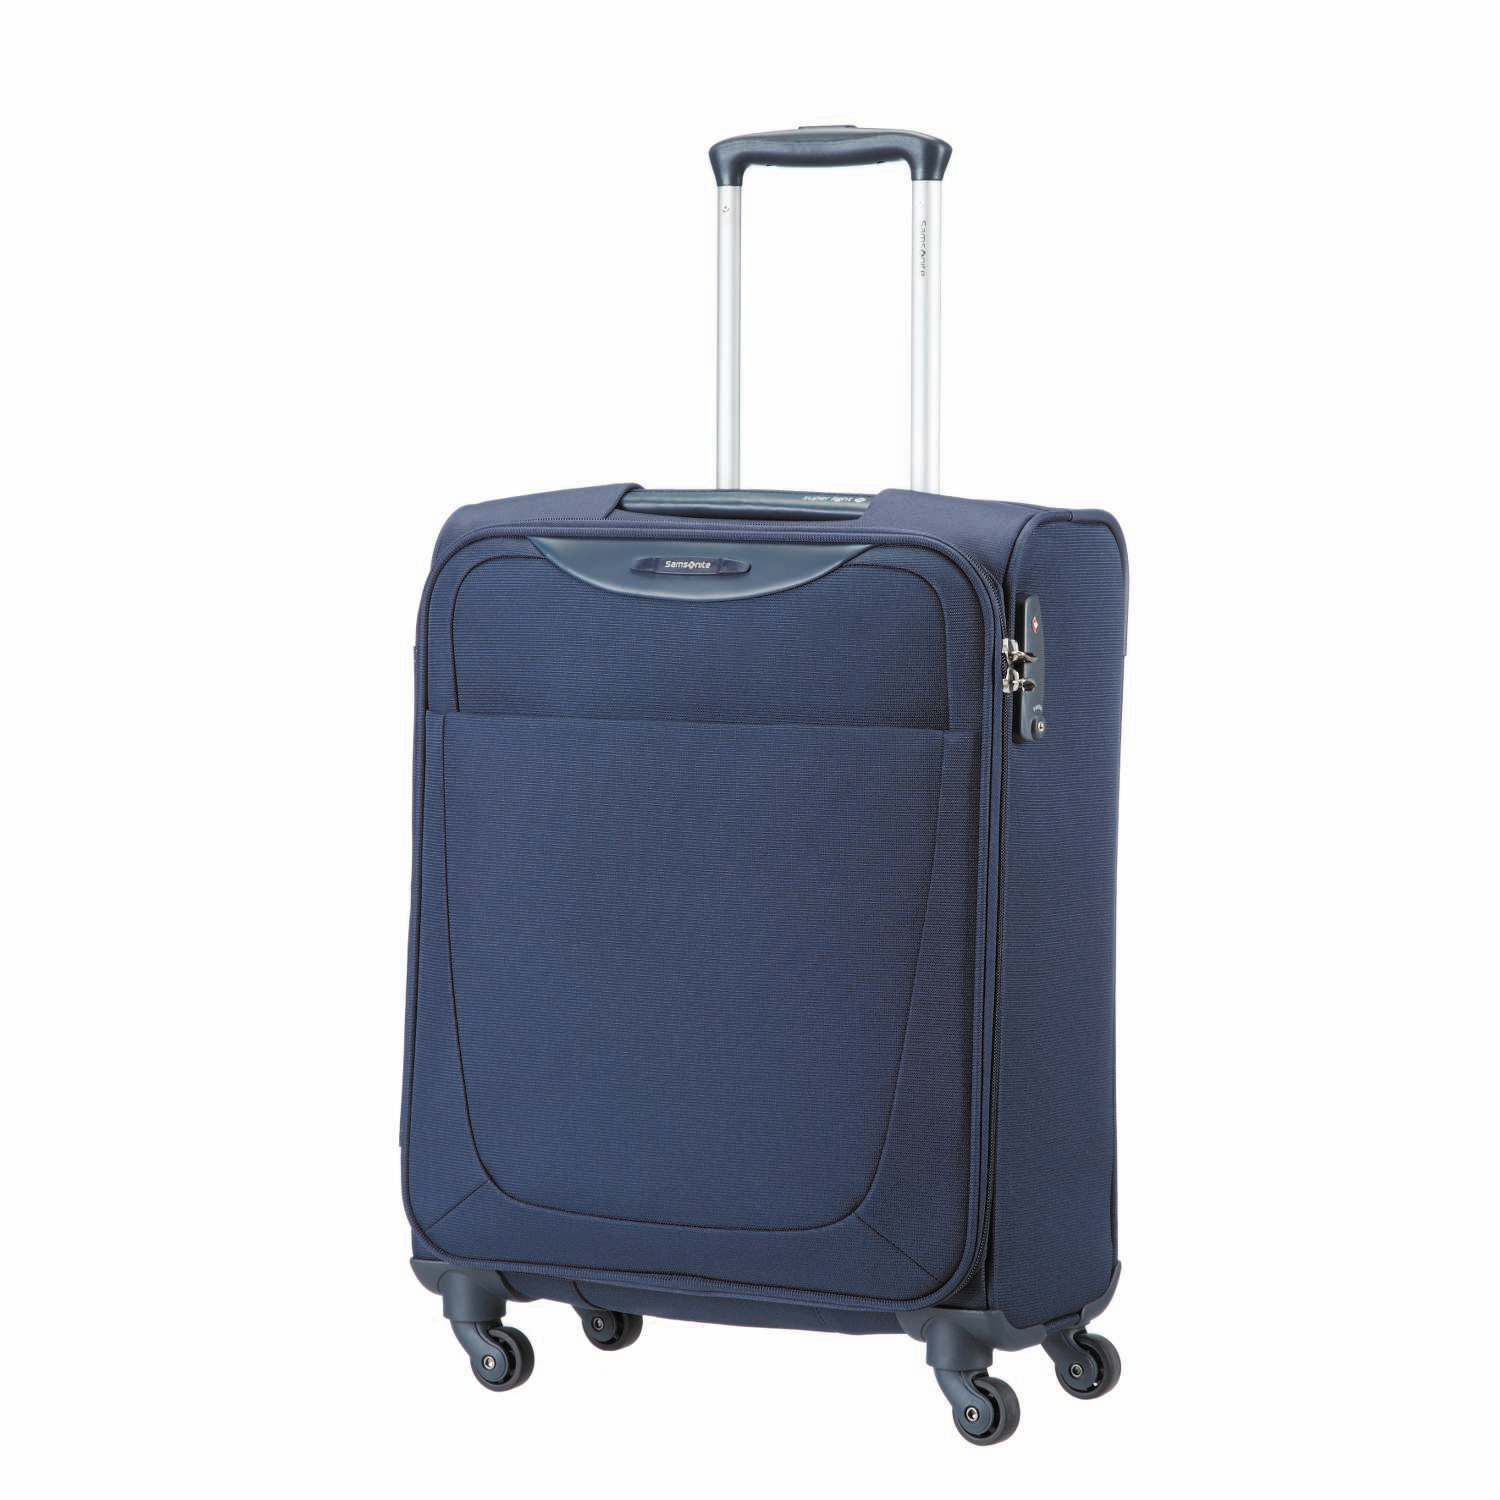 SAMSONITE (TRAVEL) - Βαλίτσα BASEHITS SPINNER 55/20 Samsonite μπλε